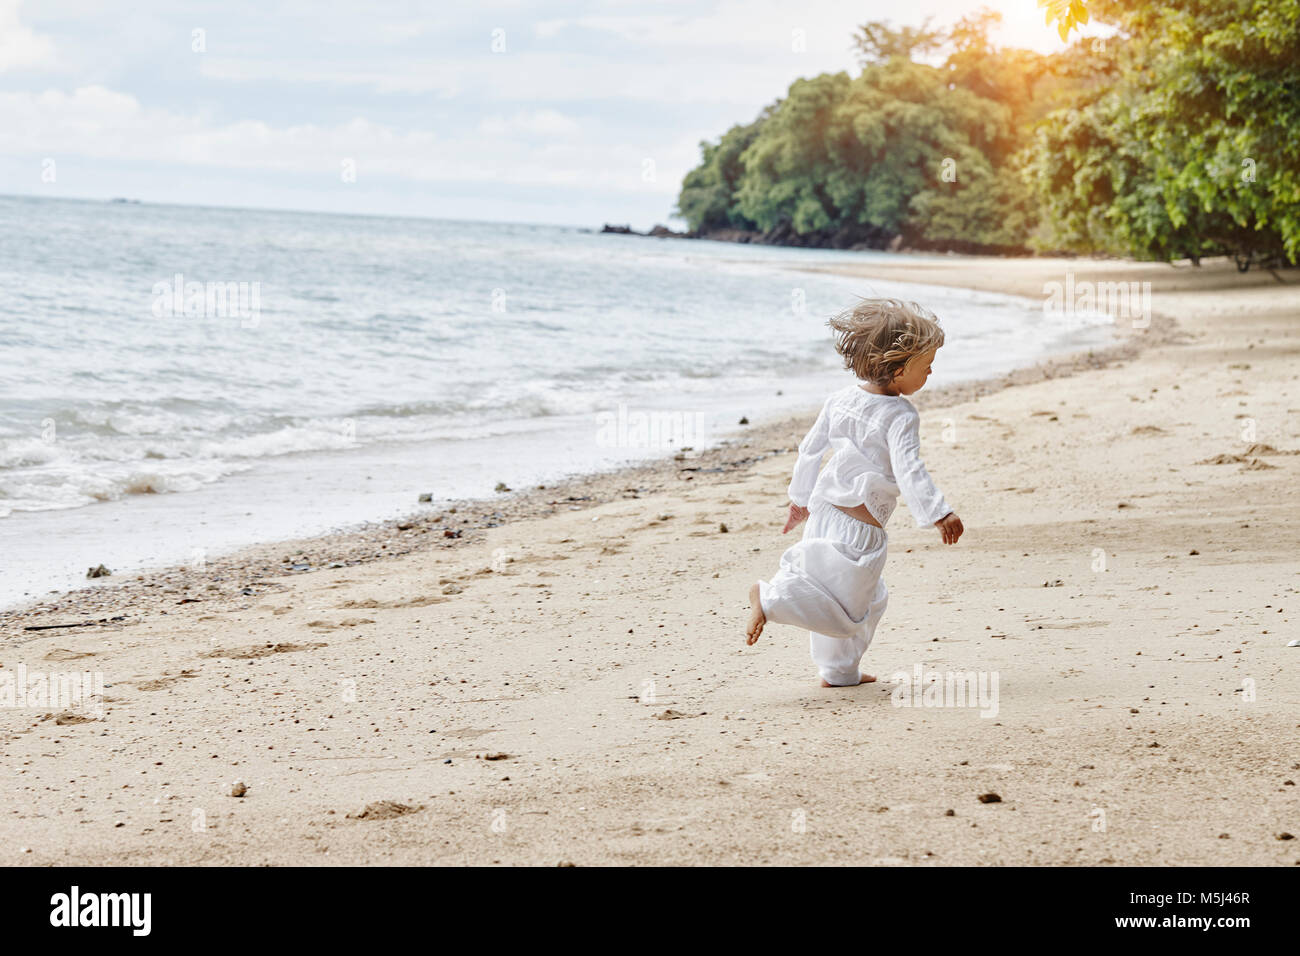 Thailand, Ko Yao Noi, little girl running on the beach - Stock Image